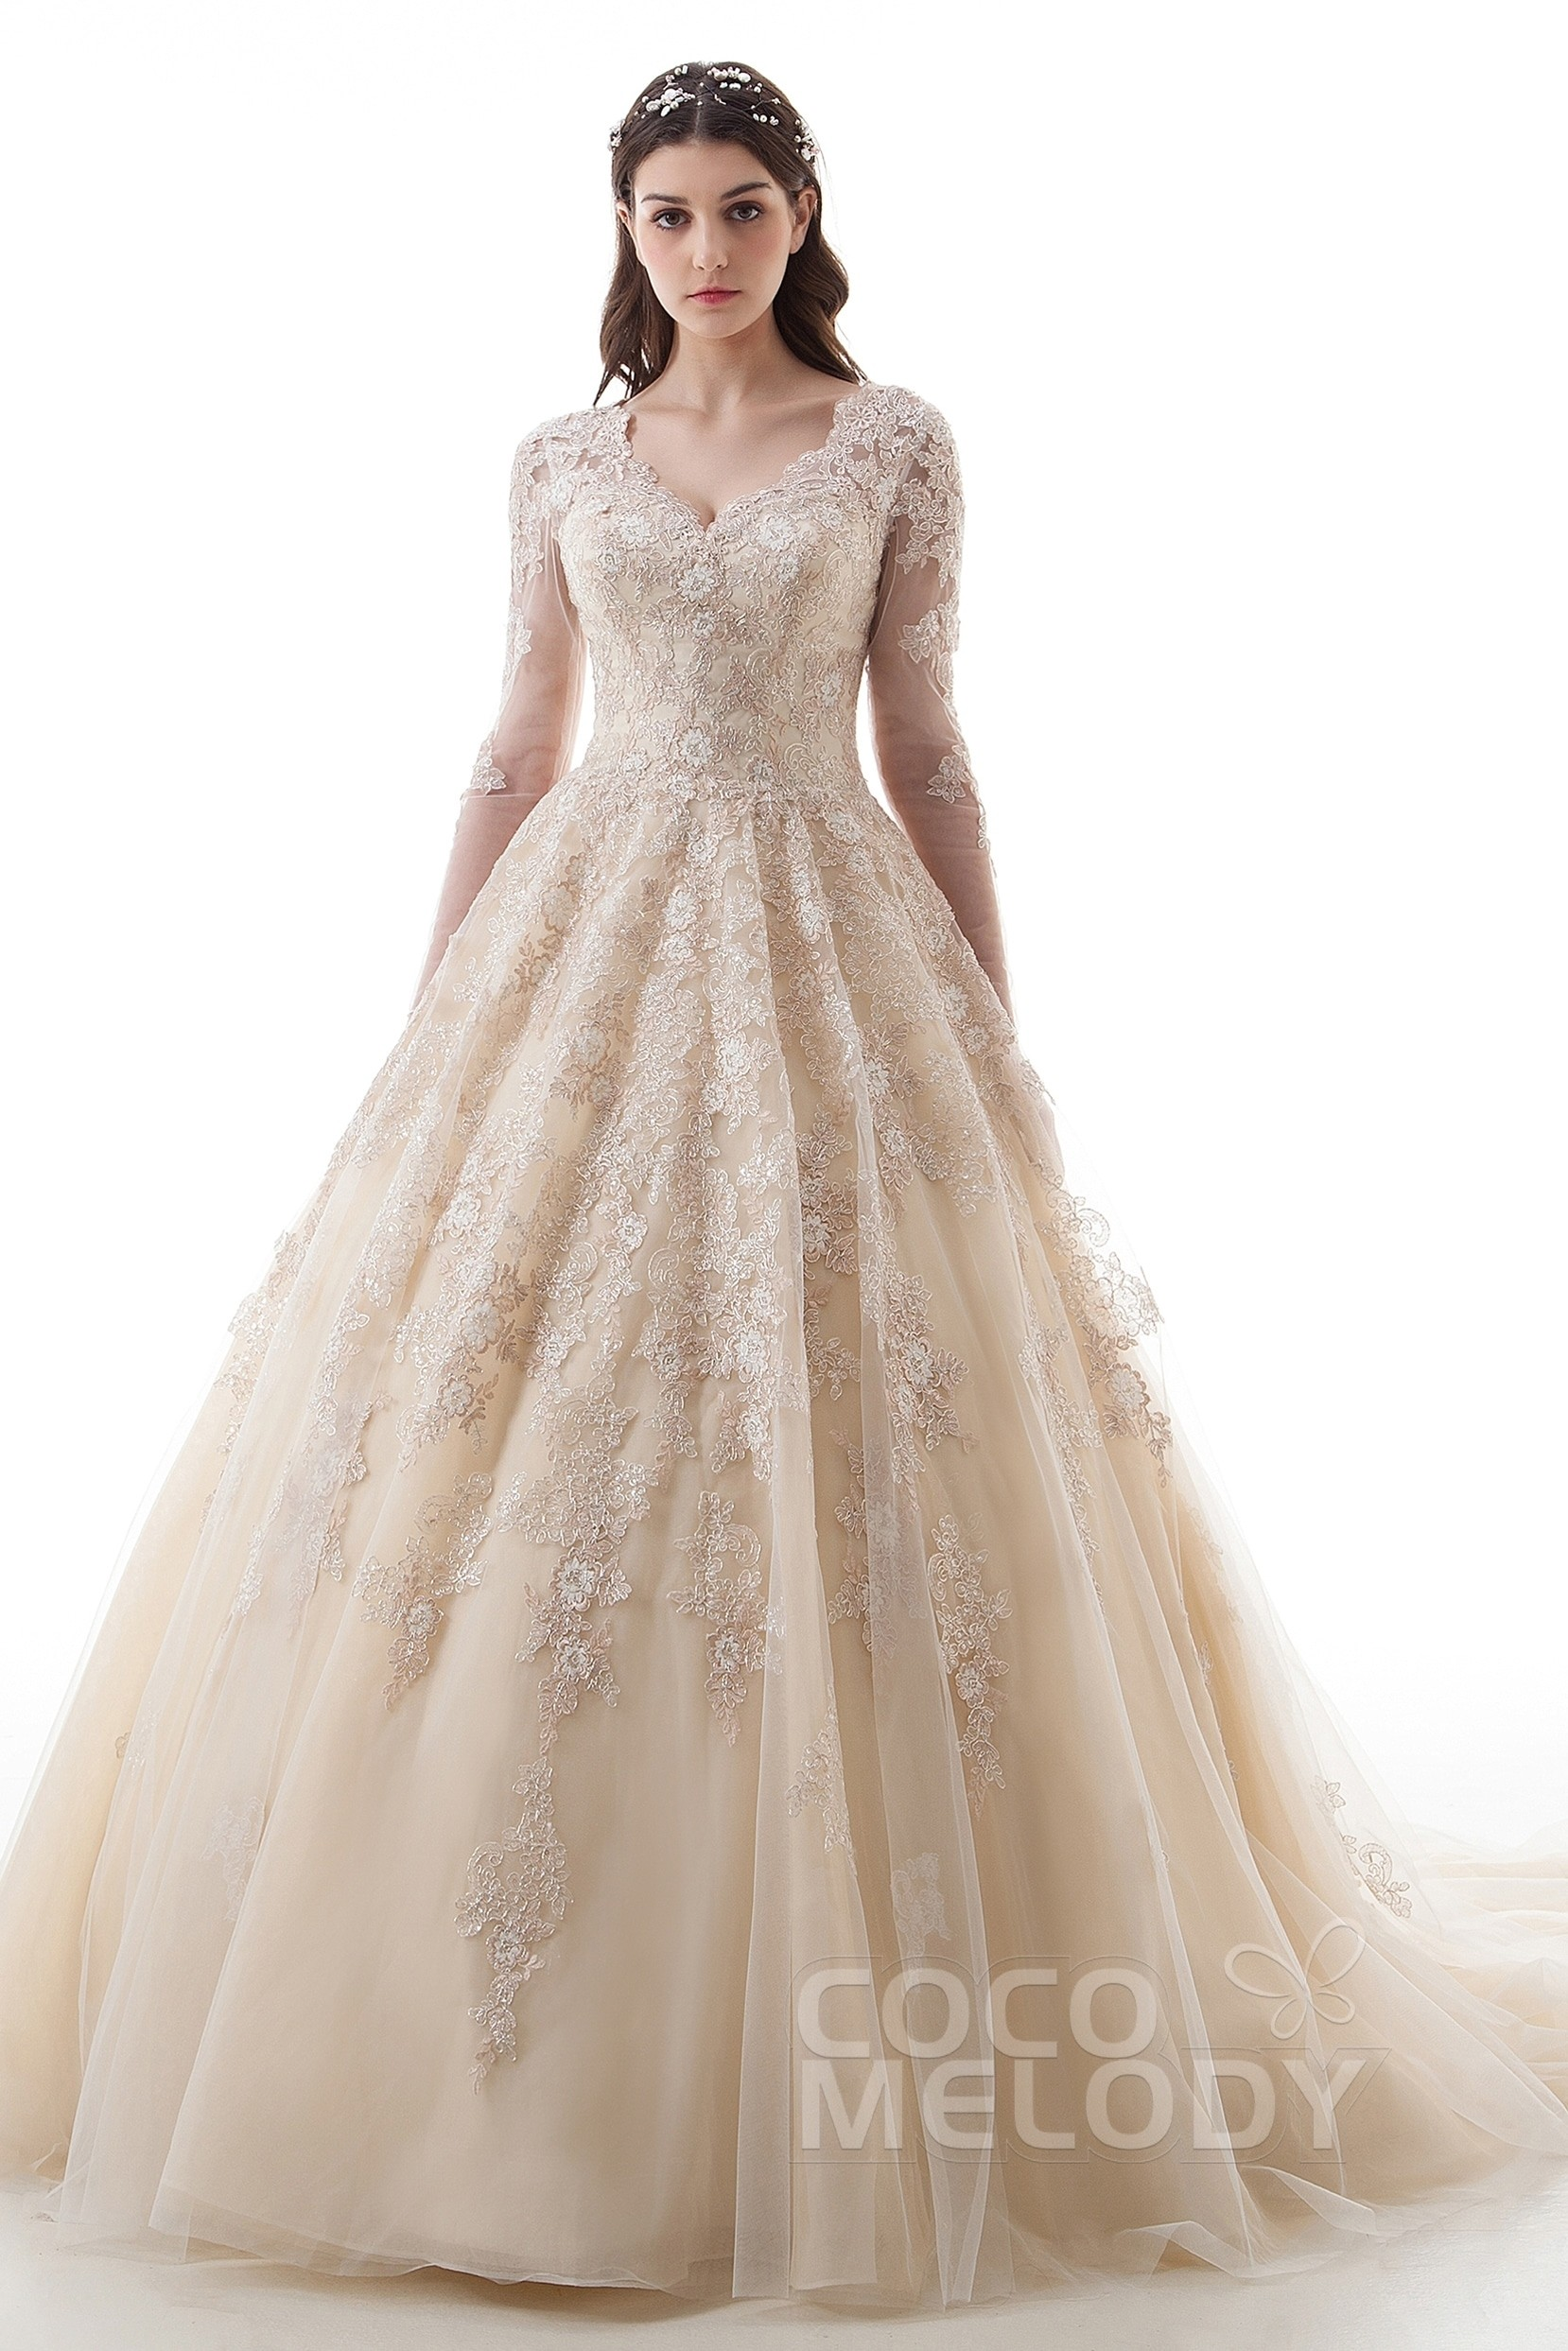 b17f151aba6 Princess Court Train Tulle Gothic Wedding Dress LD4622